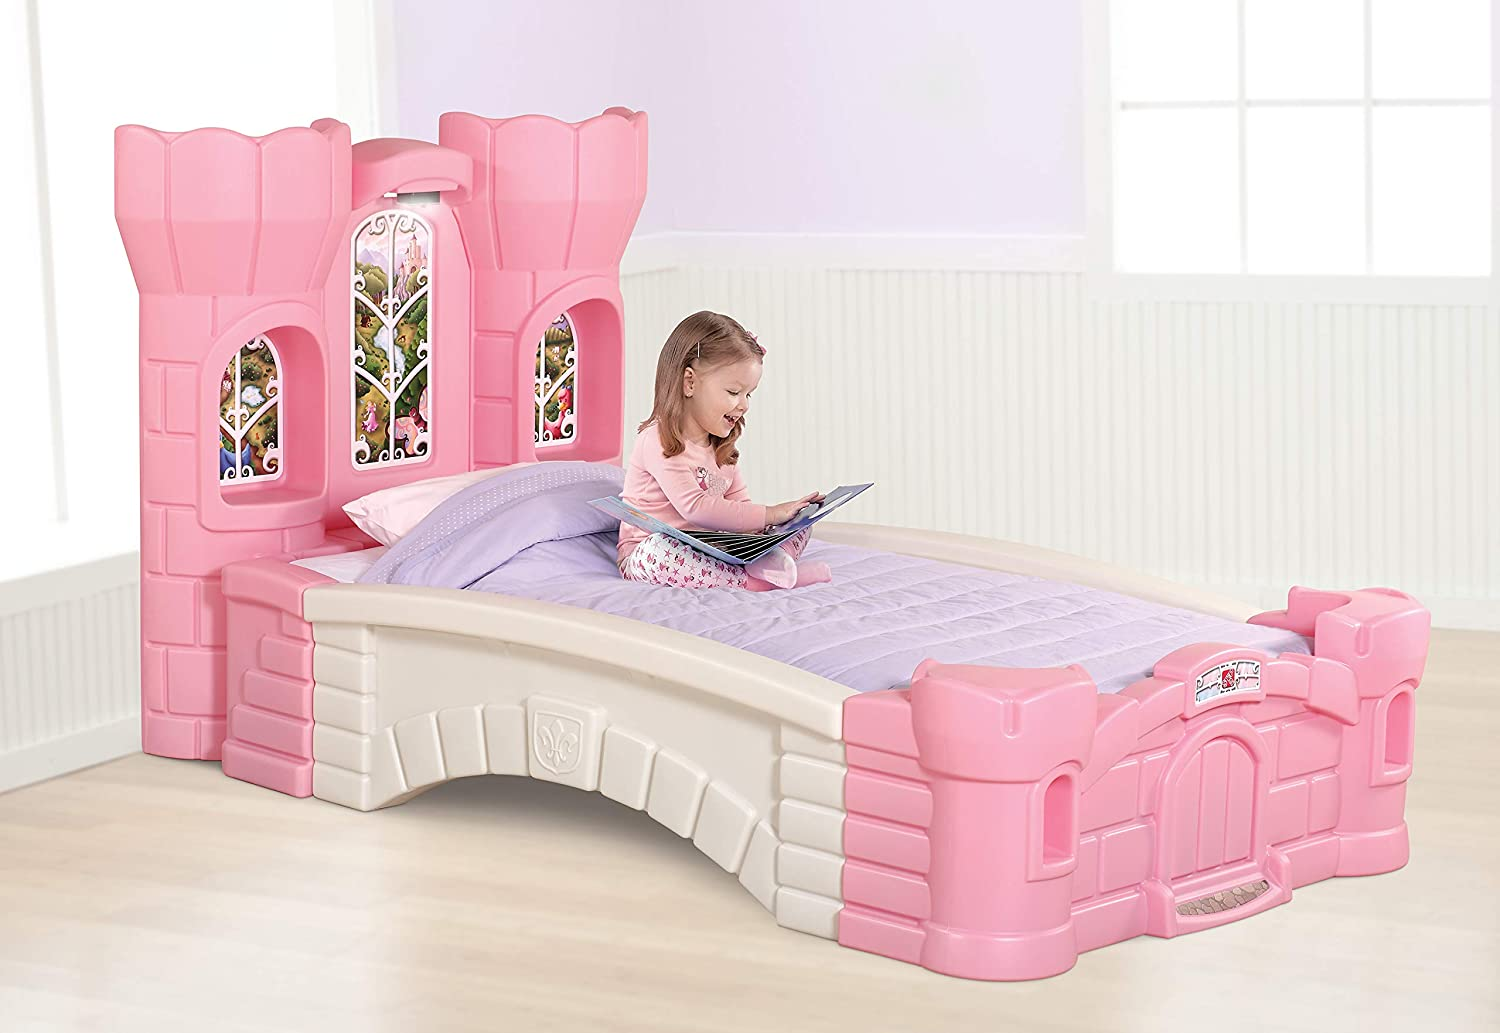 Amazon Com Step2 Princess Palace Twin Bed For Girls Kids Durable